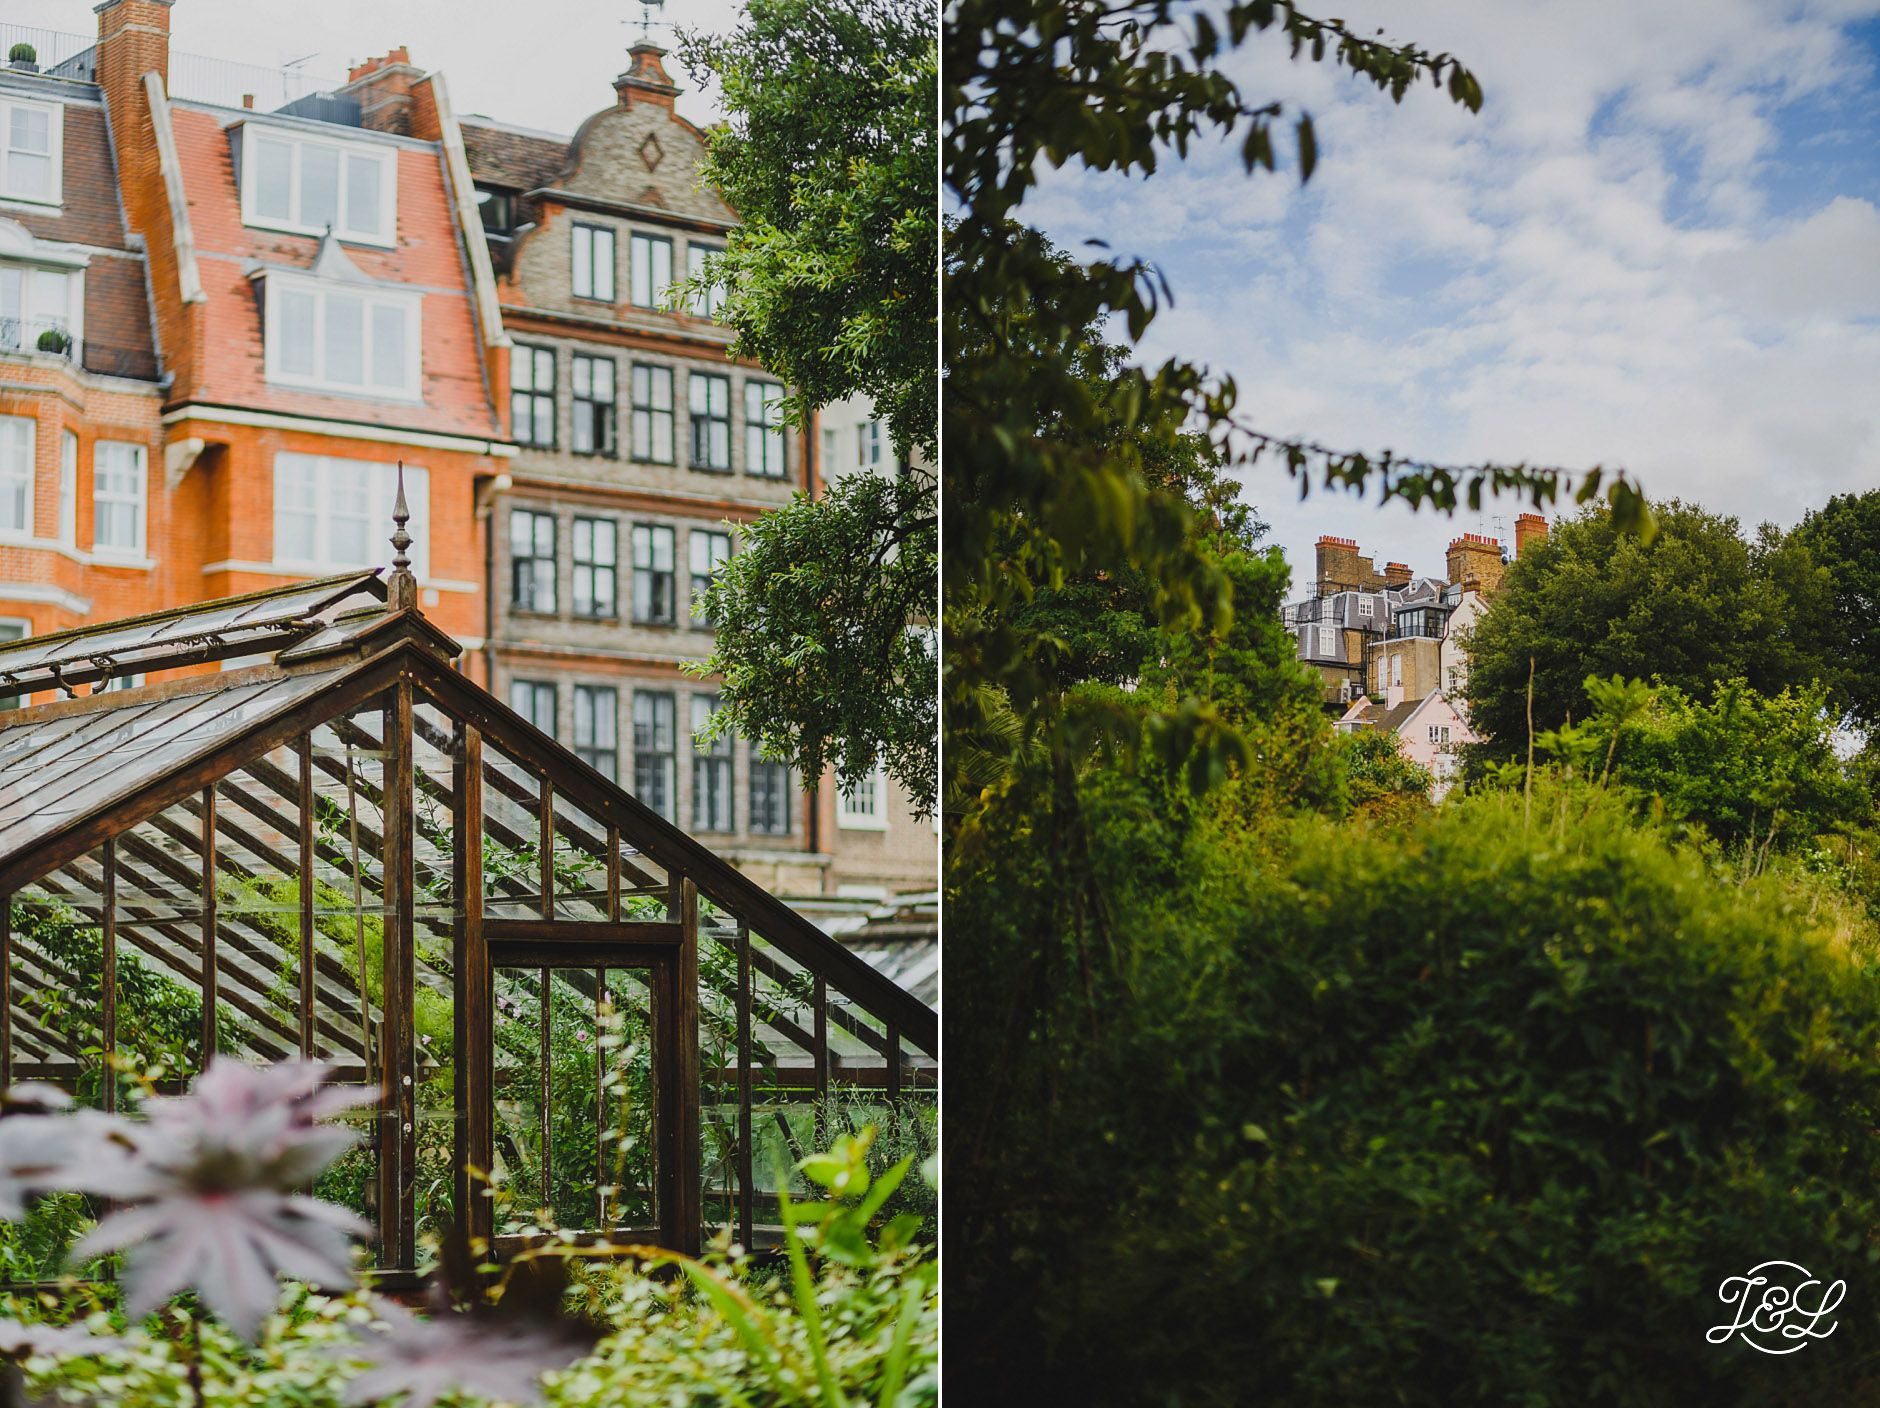 budget wedding venues north yorkshire%0A Chelsea physic garden  wonderful oasis in this urban setting  Great wedding  venue